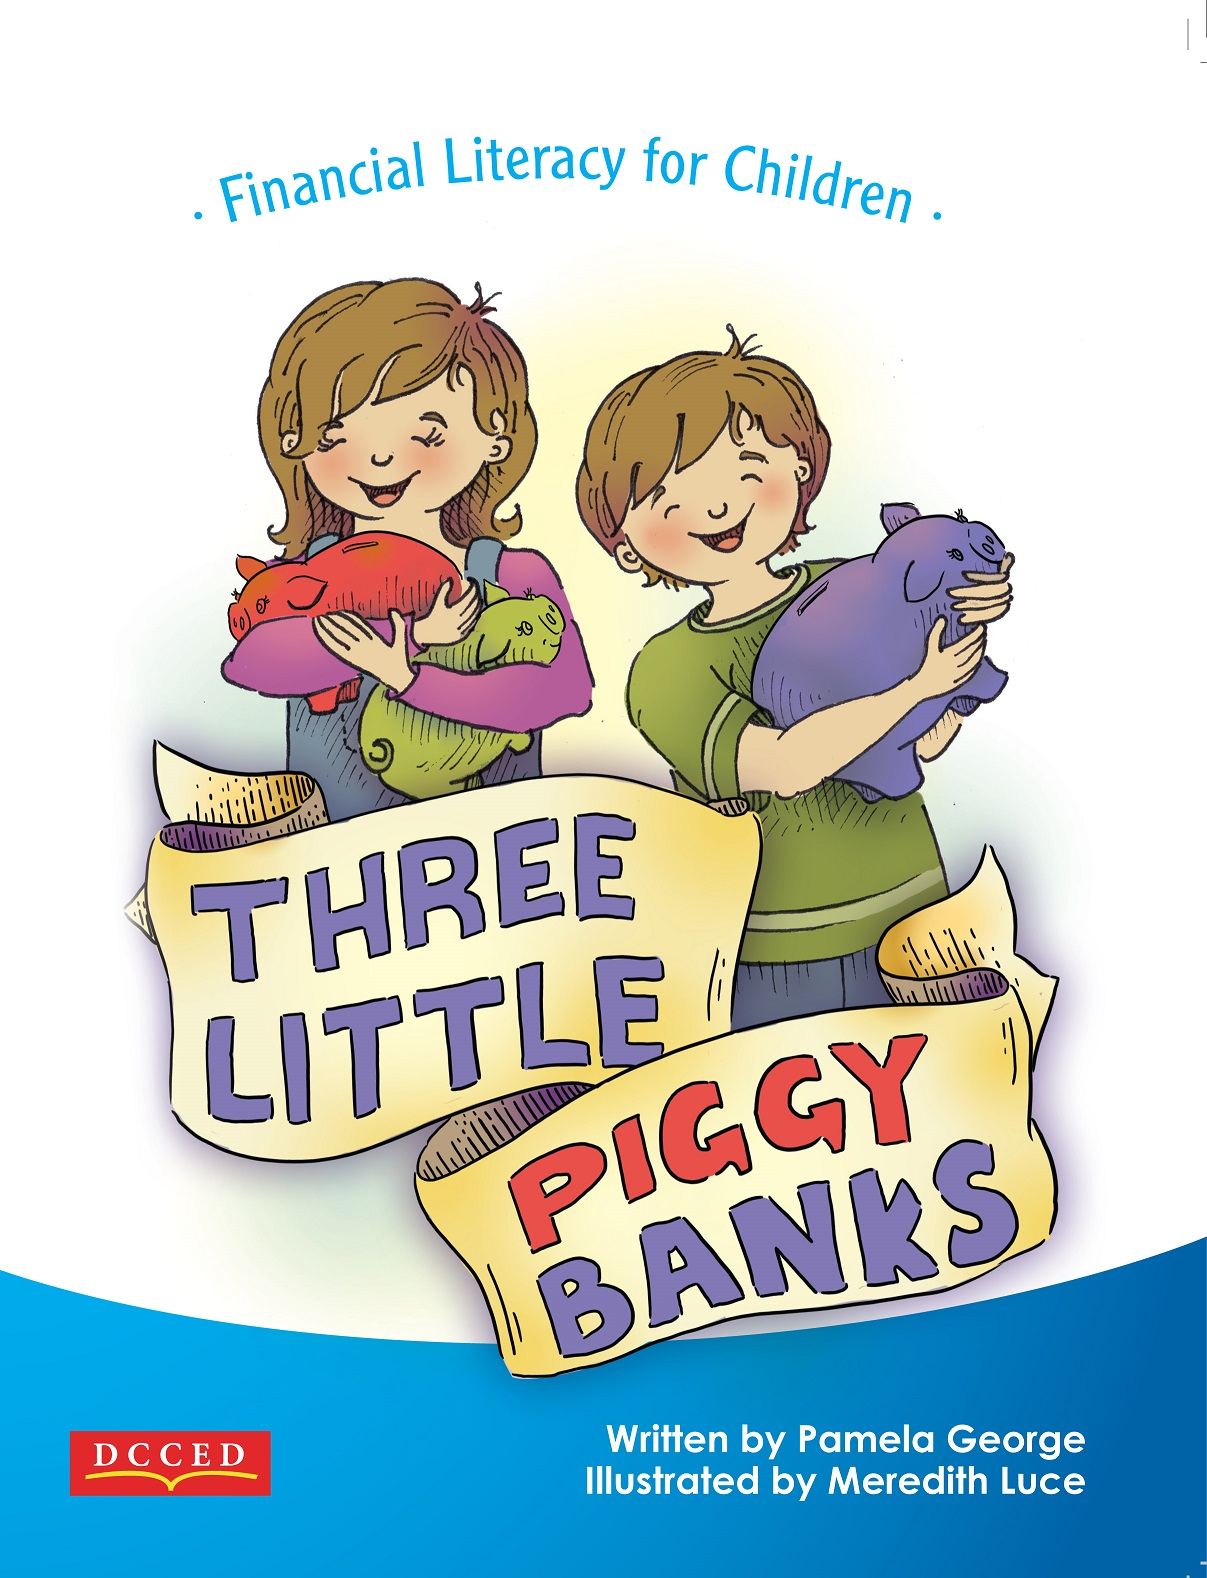 Three Little Piggy Banks, Financial Literacy & Money Management book for Children